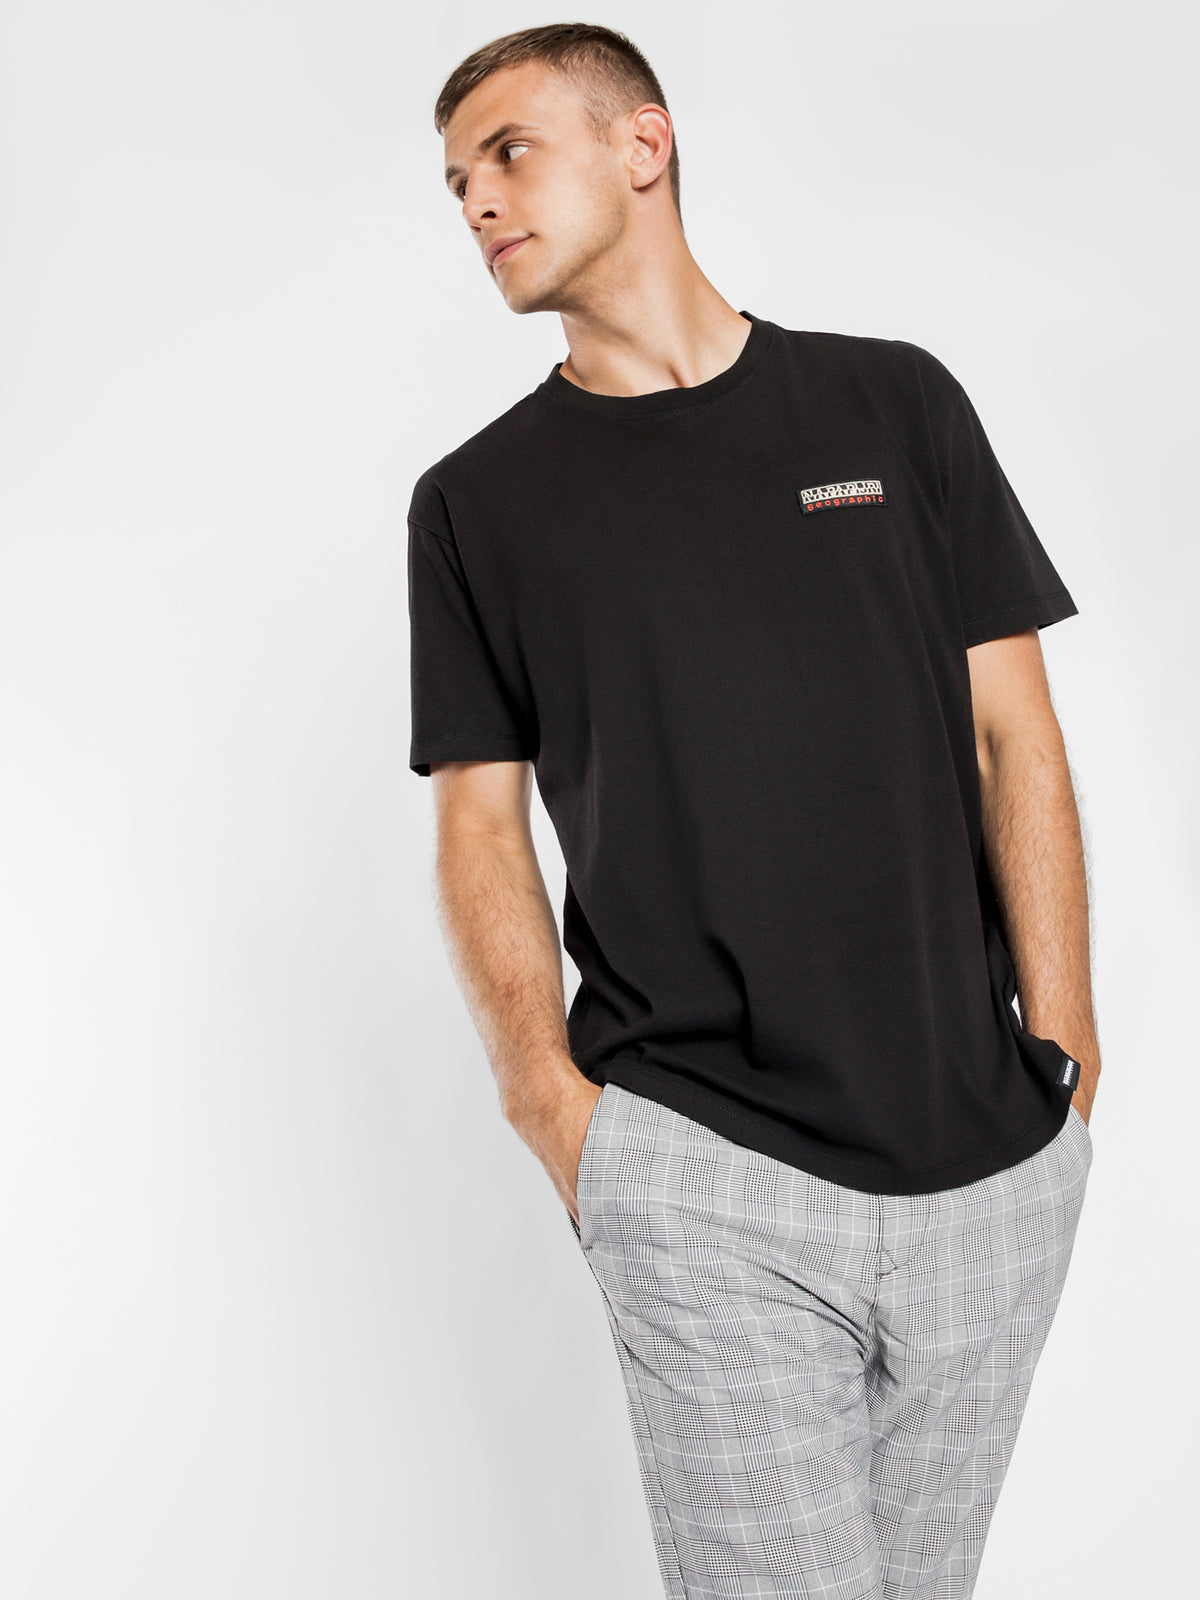 Sase Short Sleeve T-Shirt in Black